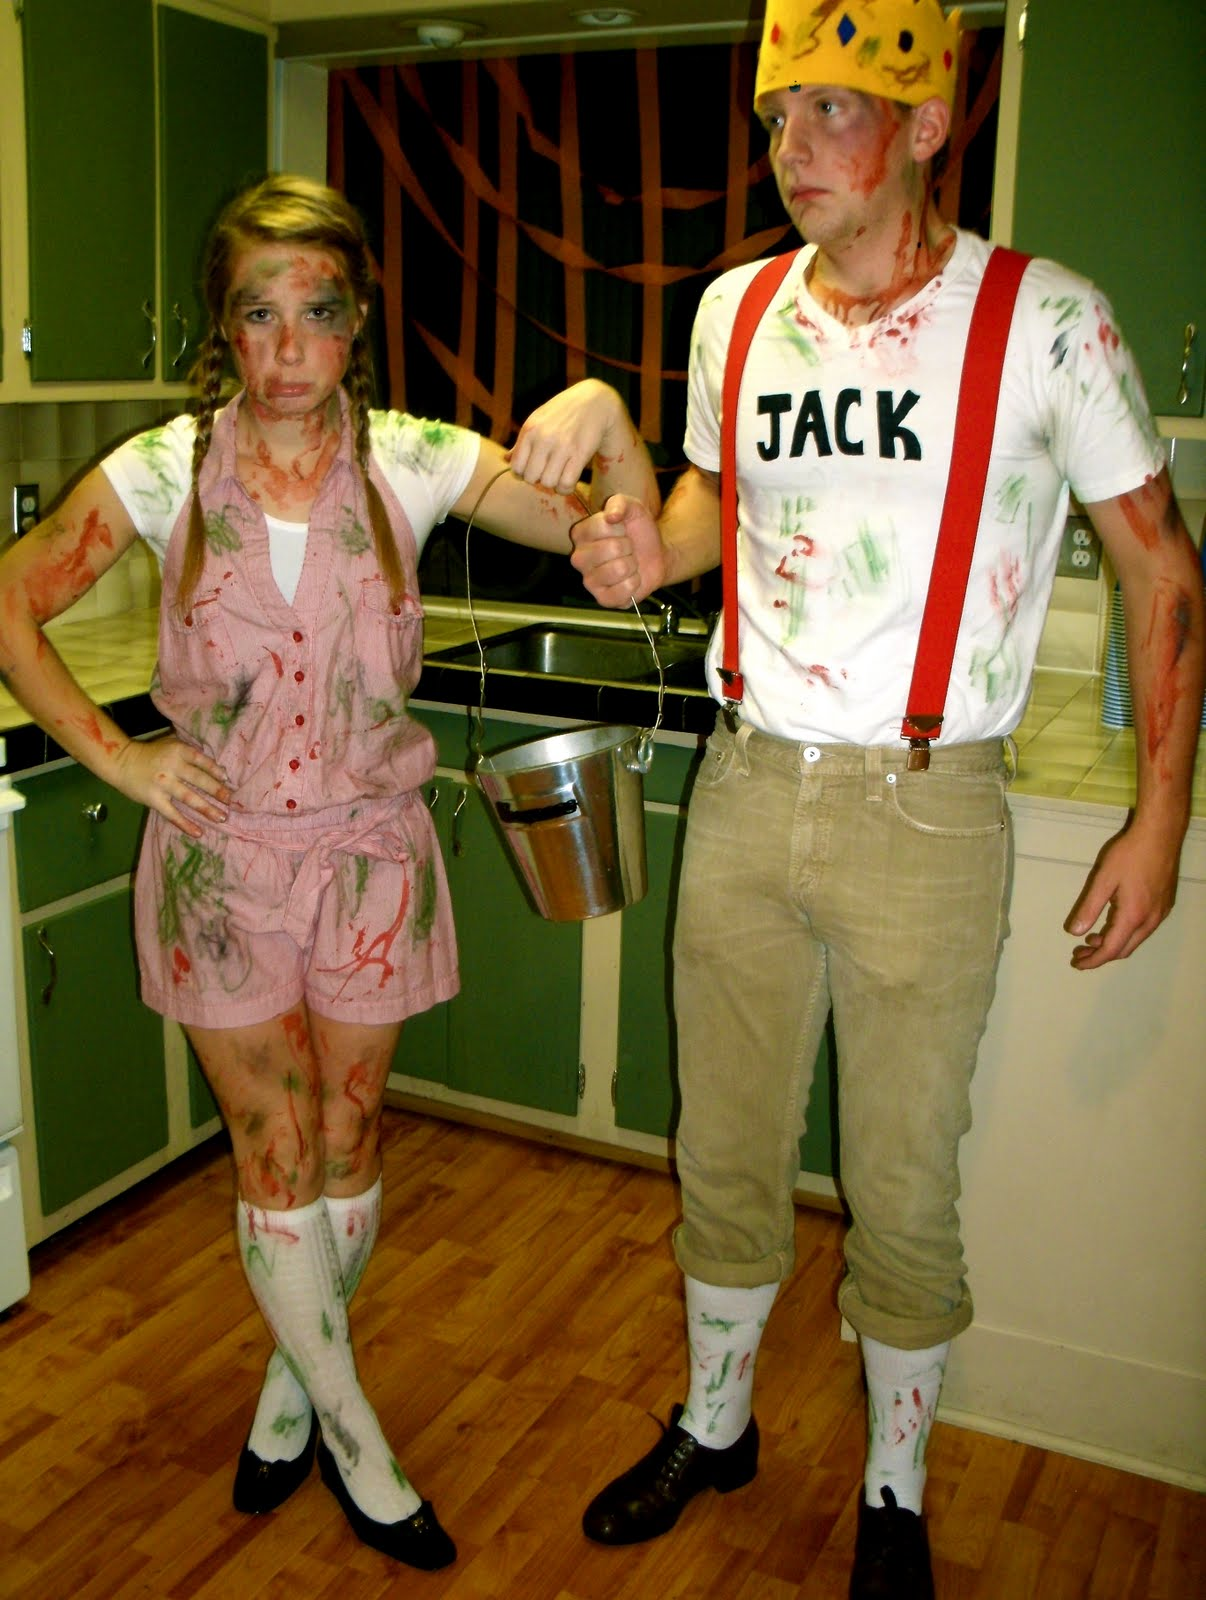 Jack And Jill Dvd Release Date March 6 2012: A Spoonful Of Life: Jack And Jill